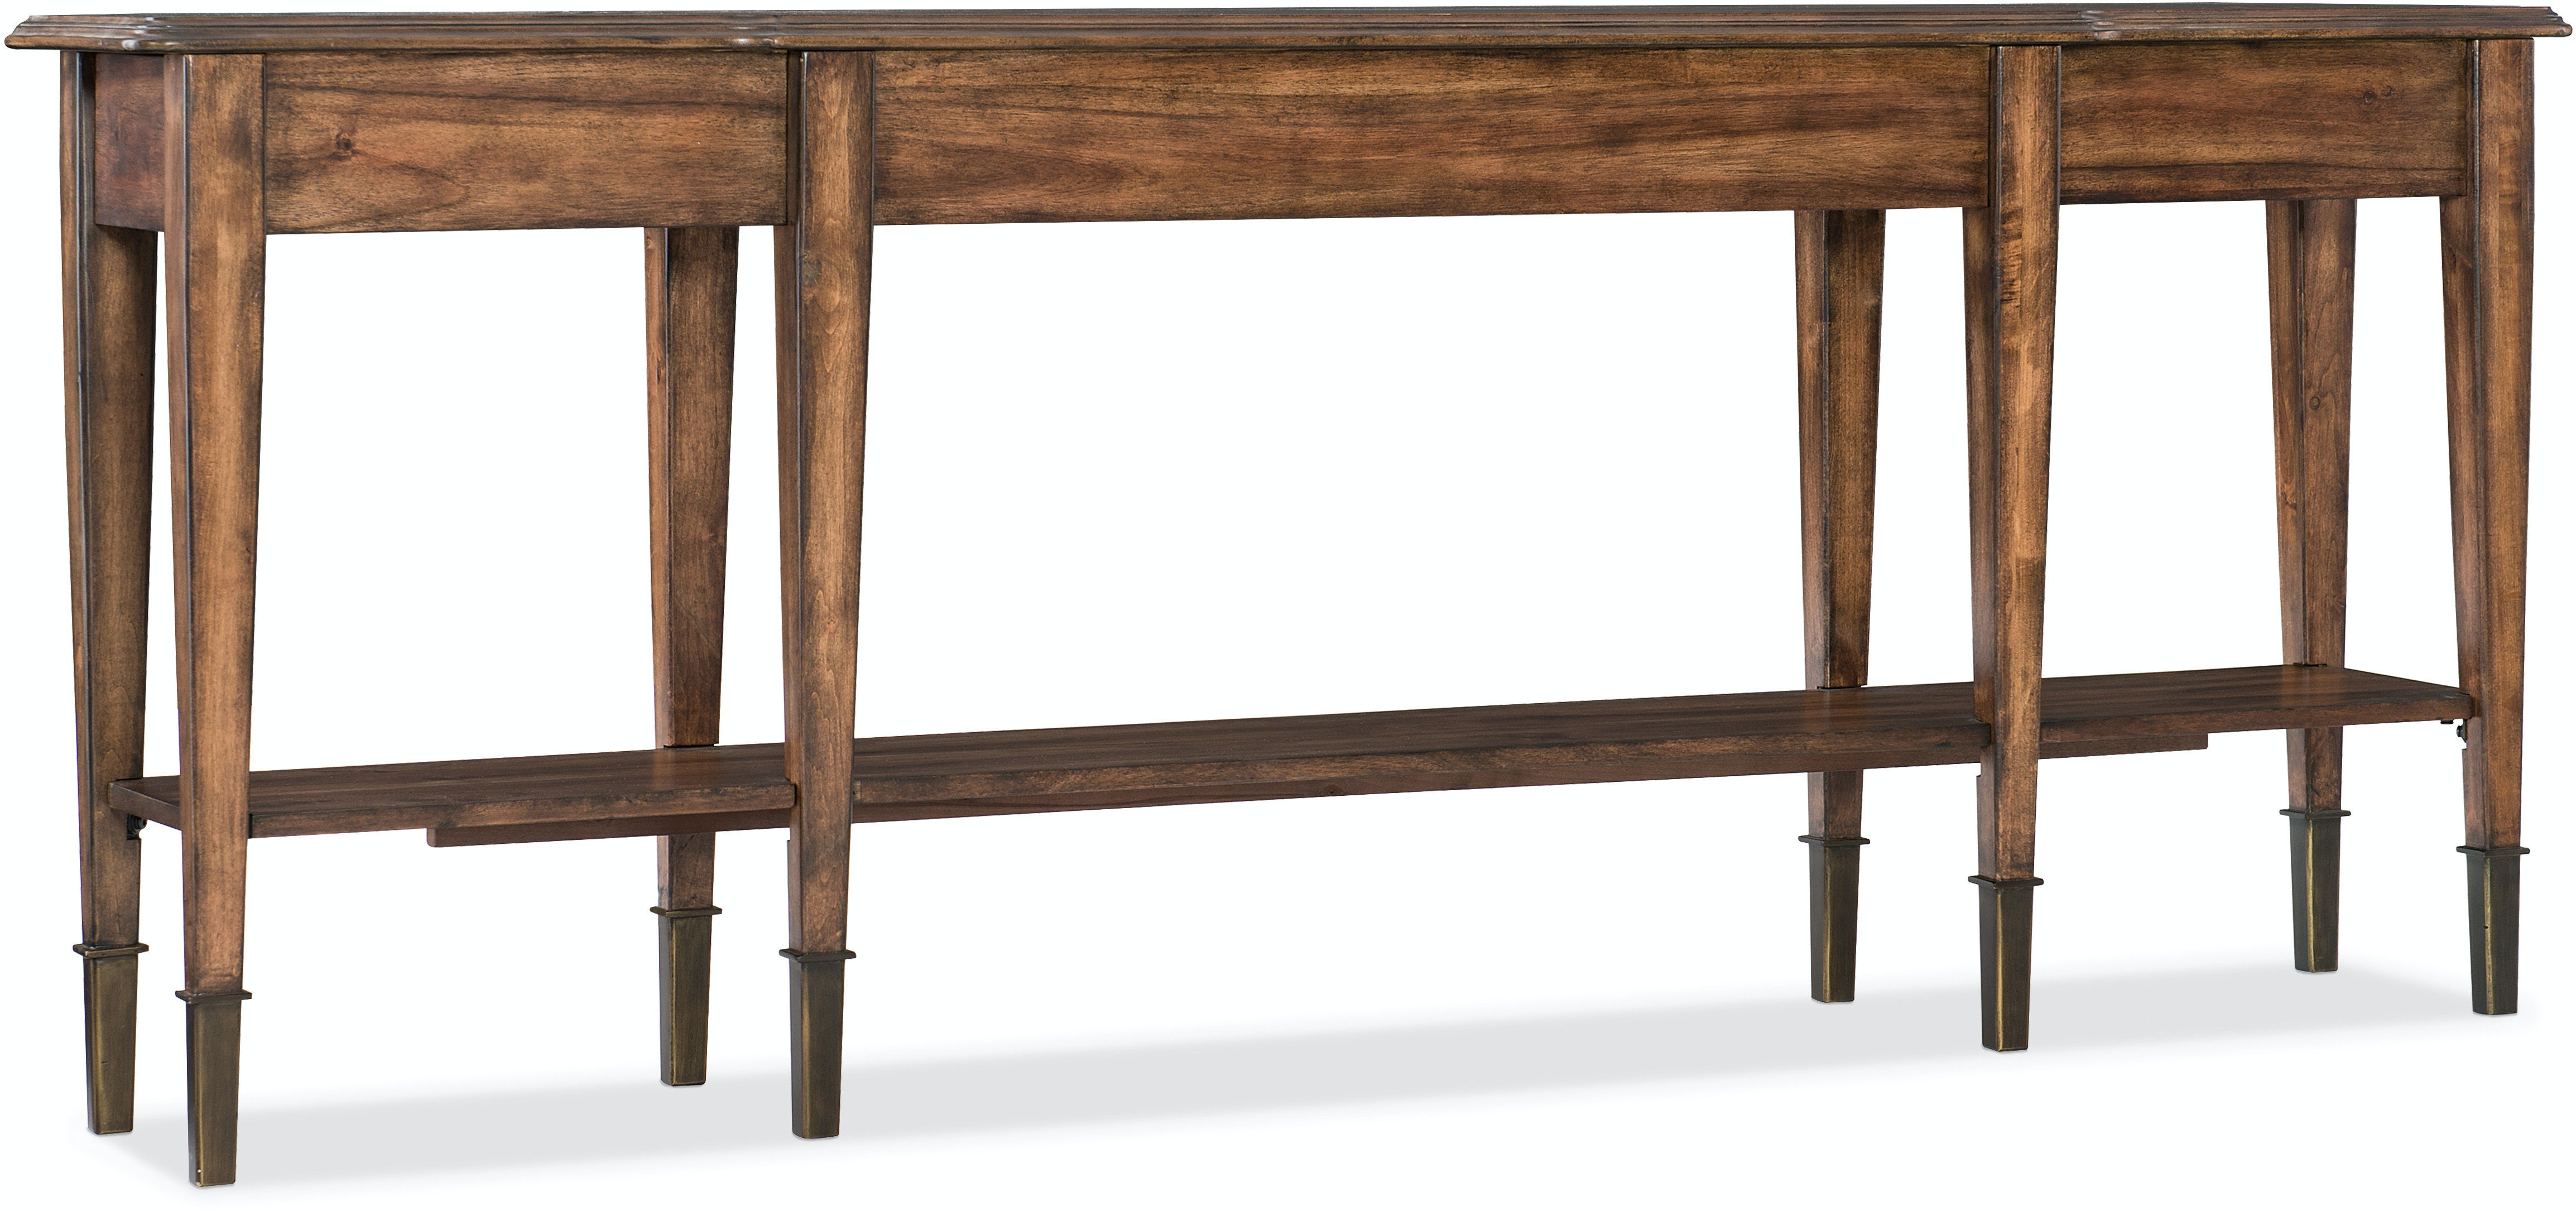 Hooker Furniture Living Room Skinny Console Table 5660 MWD